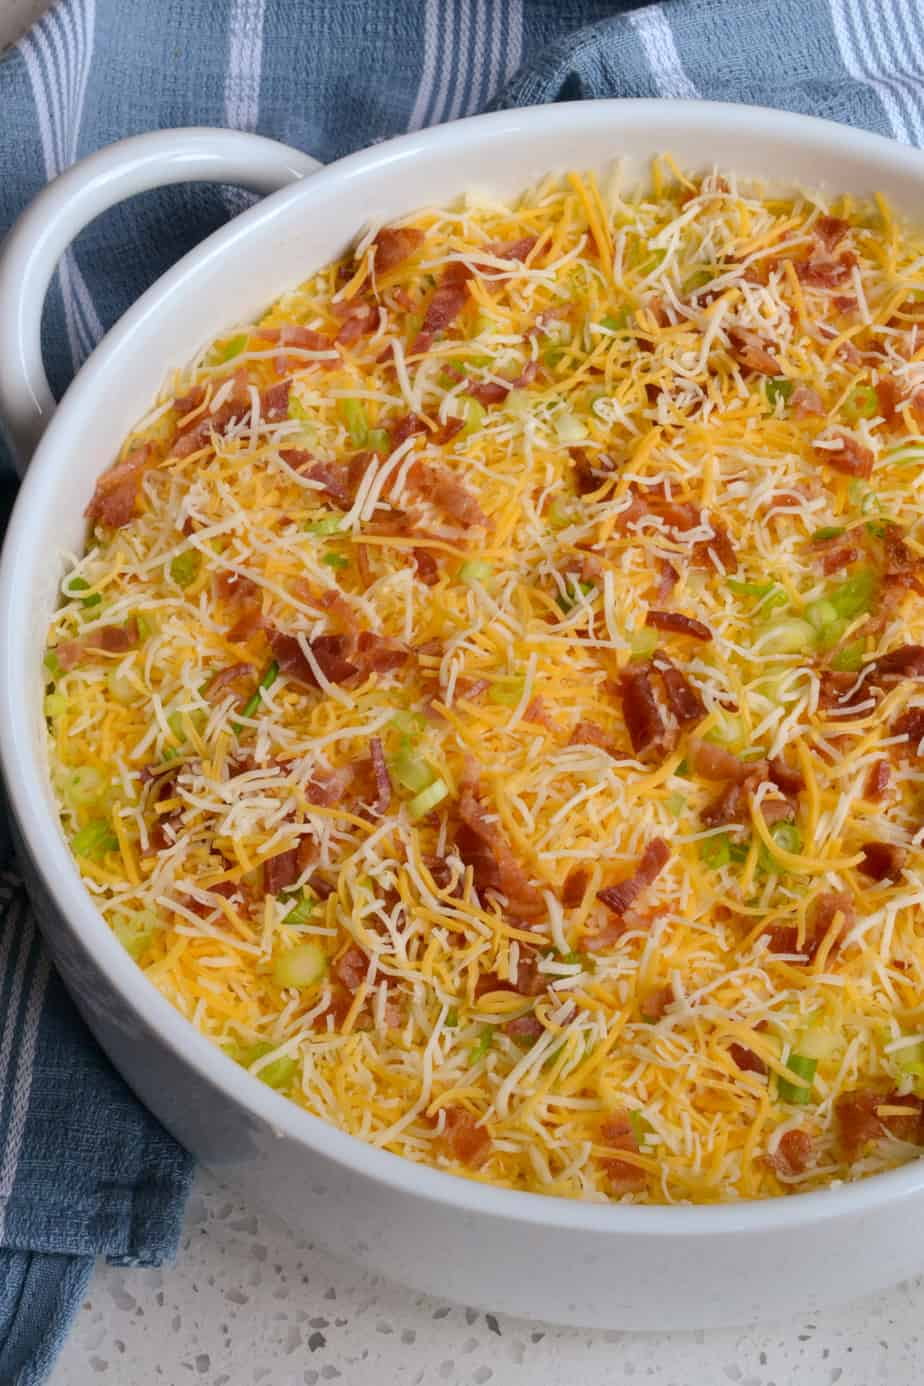 Top the twice baked potatoes with bacon, cheese, and green onions.